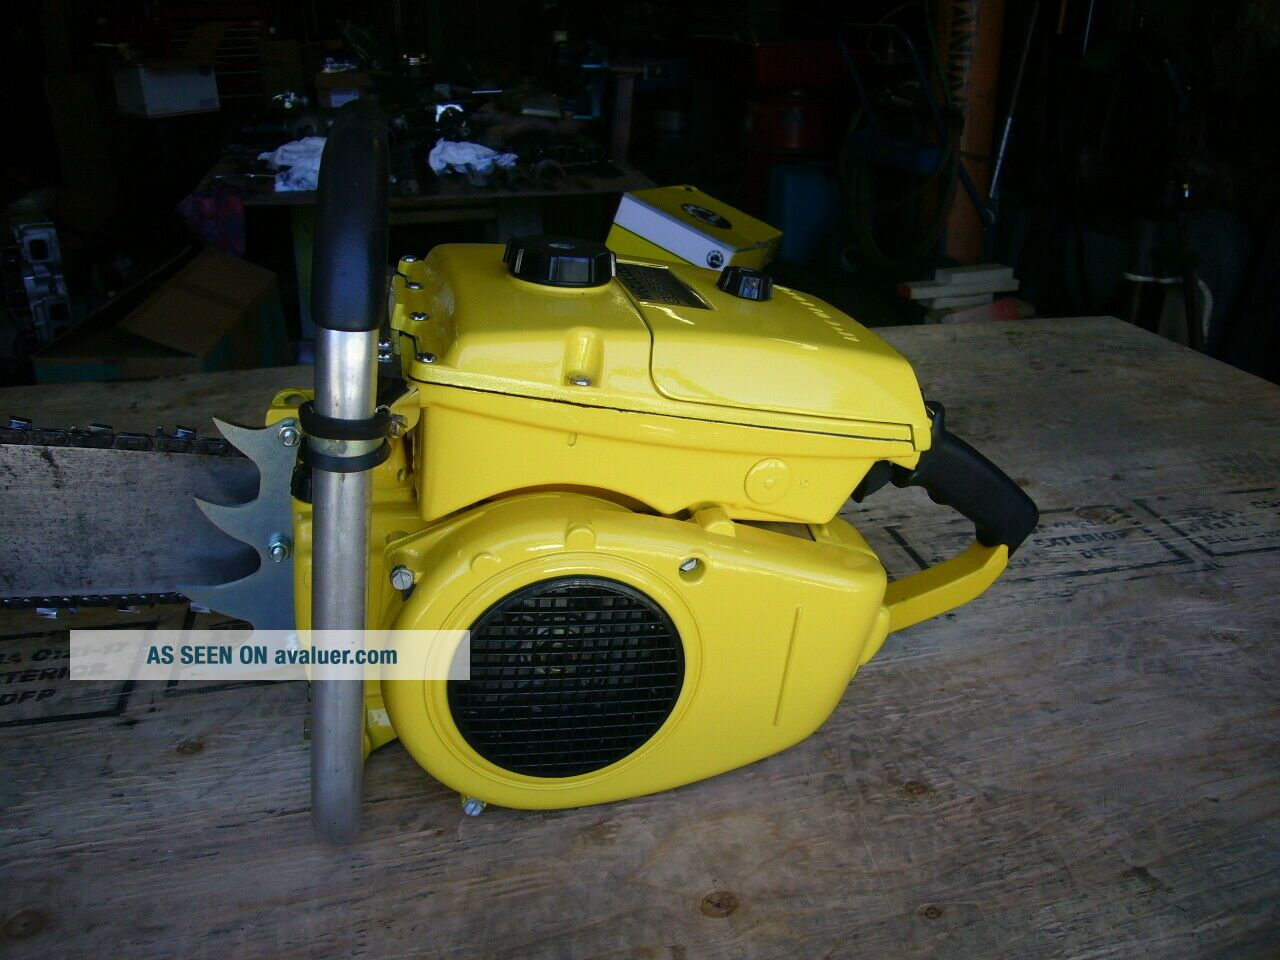 Mcculloch 797 vintage muscle chainsaw 123cc ' s